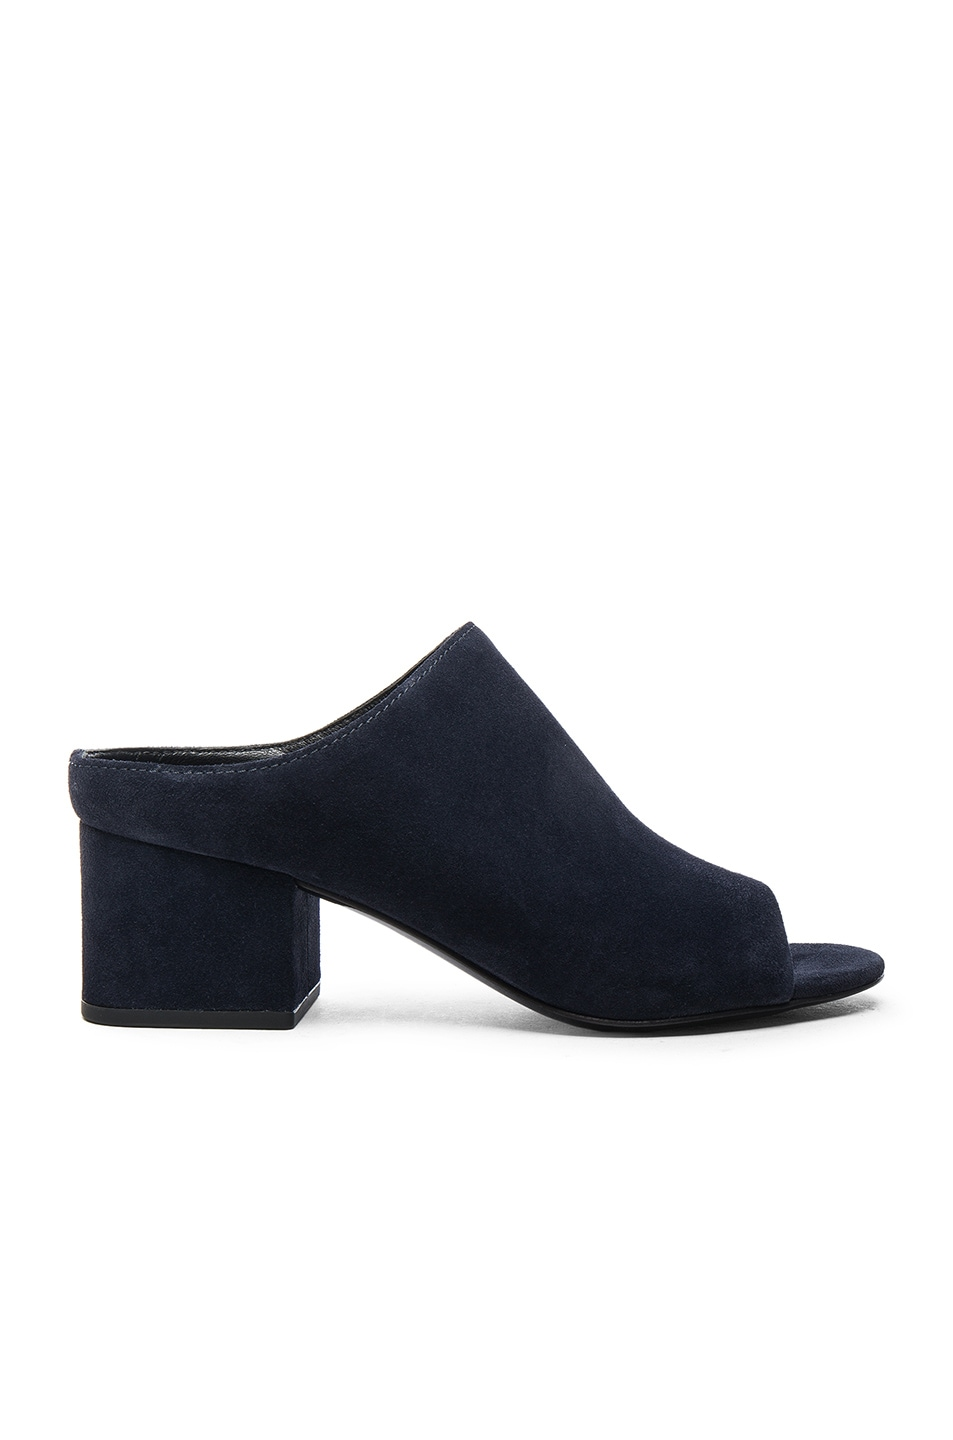 Image 1 of 3.1 phillip lim Cube Suede Open Toe Mules in Night